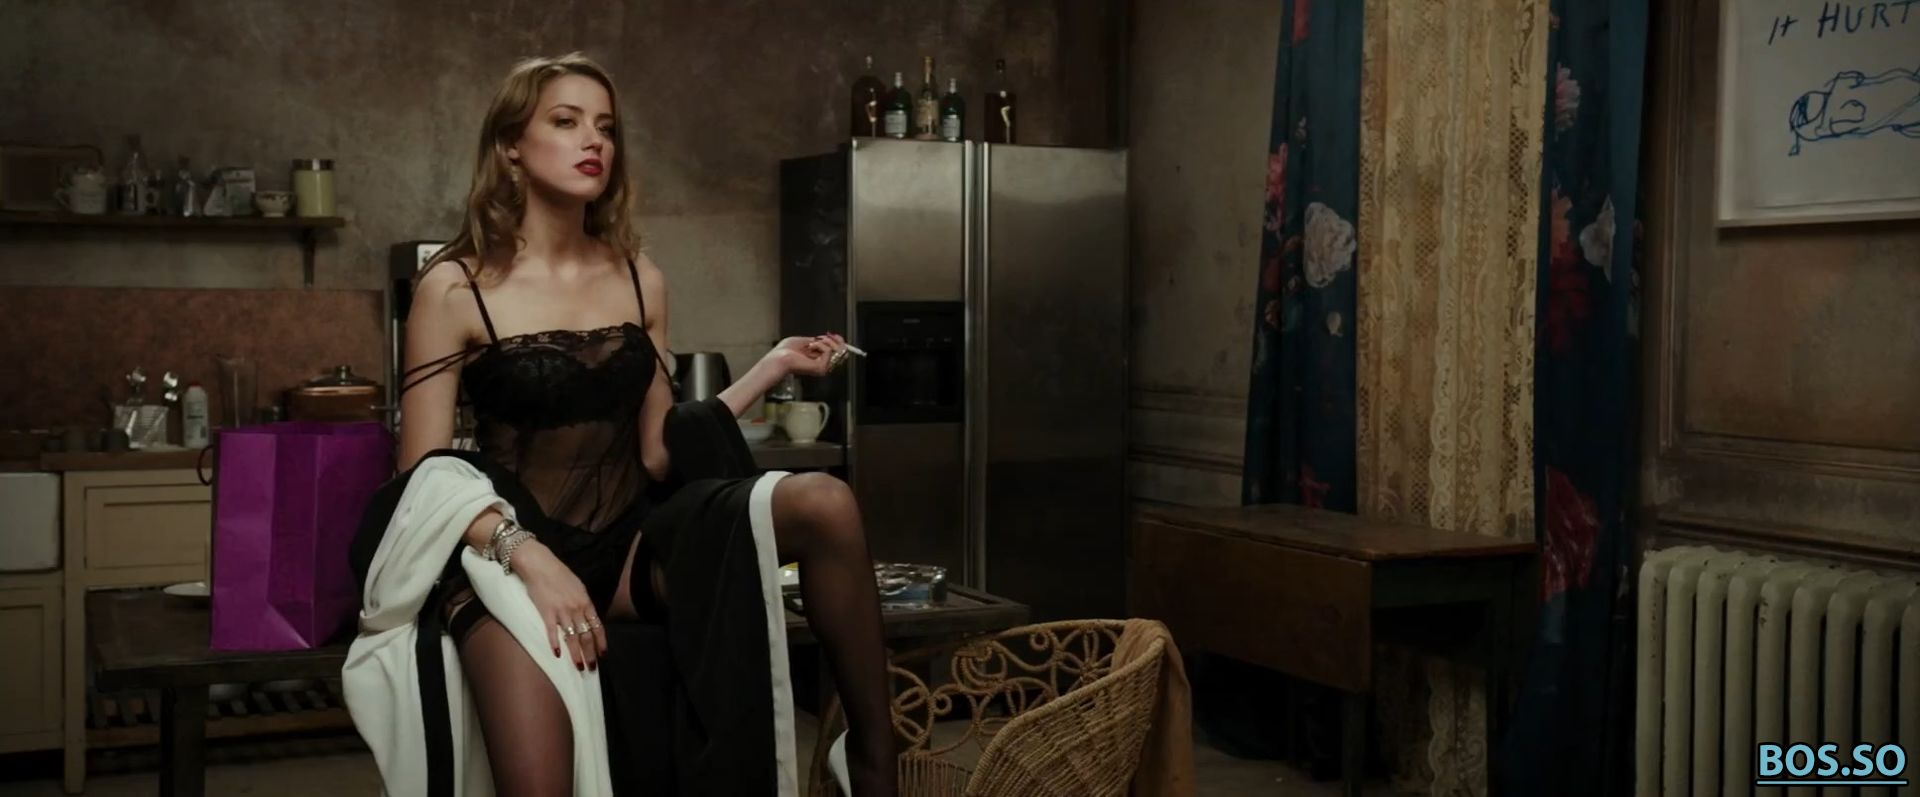 https://cdn.fappeninggram.com/photos/amber-heard/amber-heard-nude184.jpg